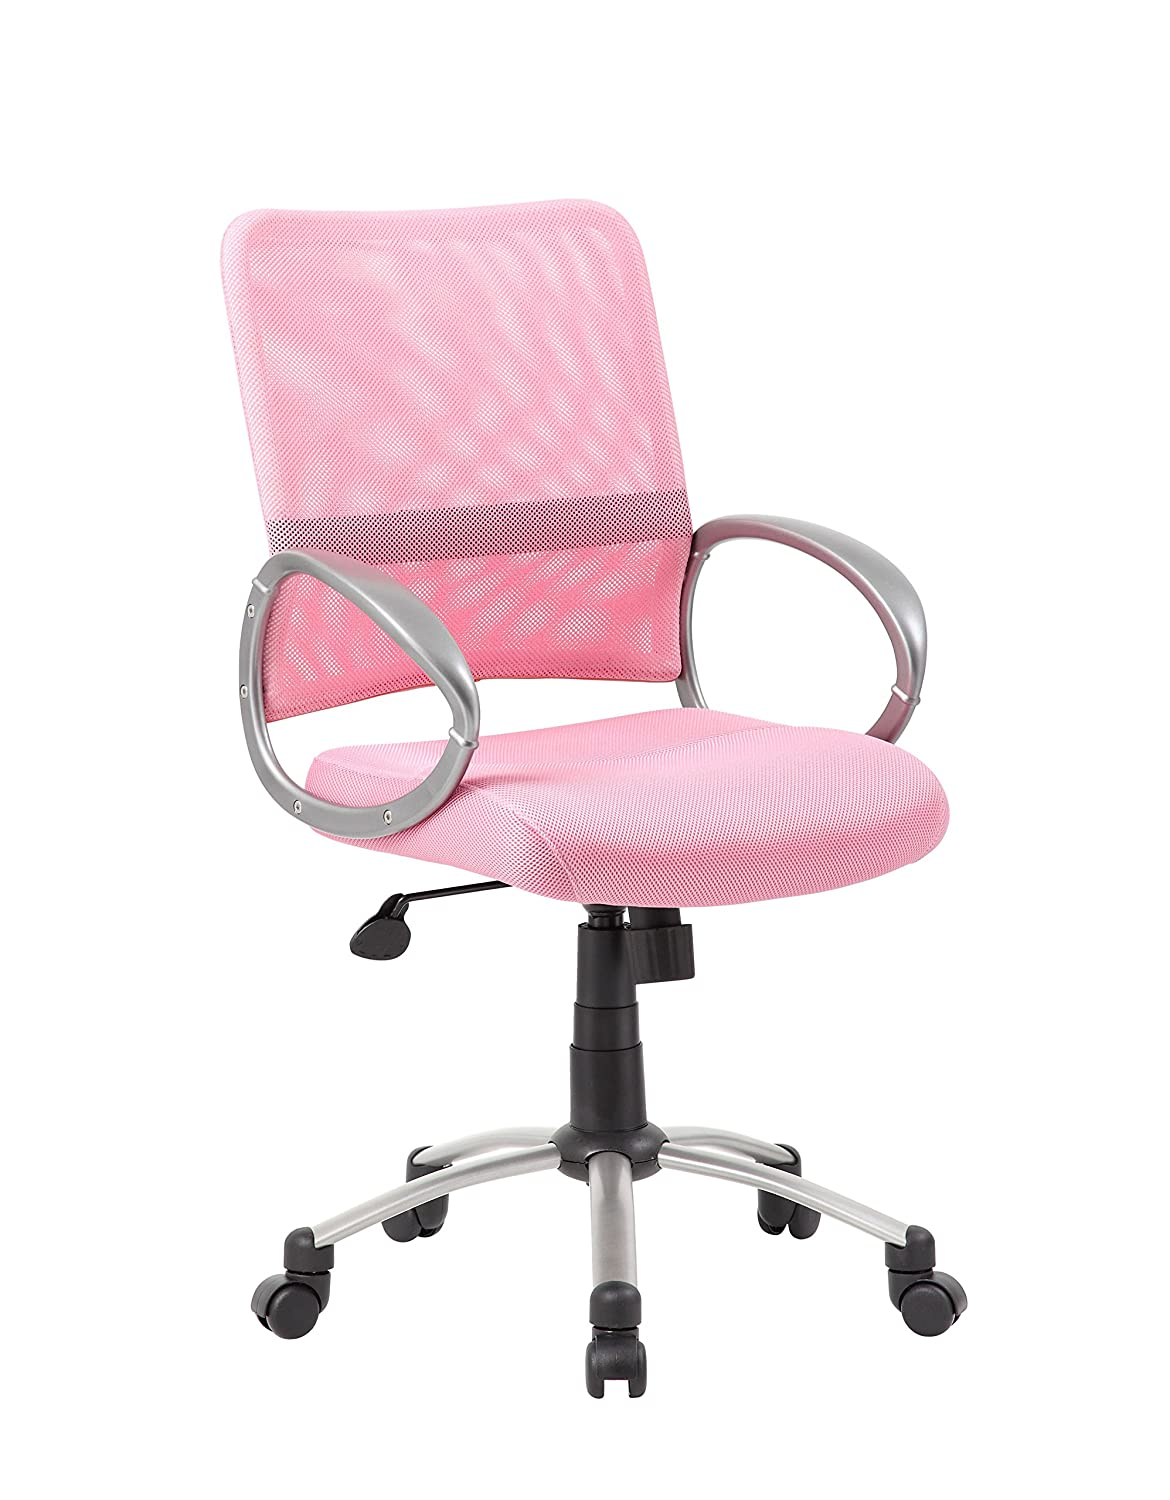 Boss Office Products B6416-PK Mesh Back Task Chair with Pewter Finish in Pink